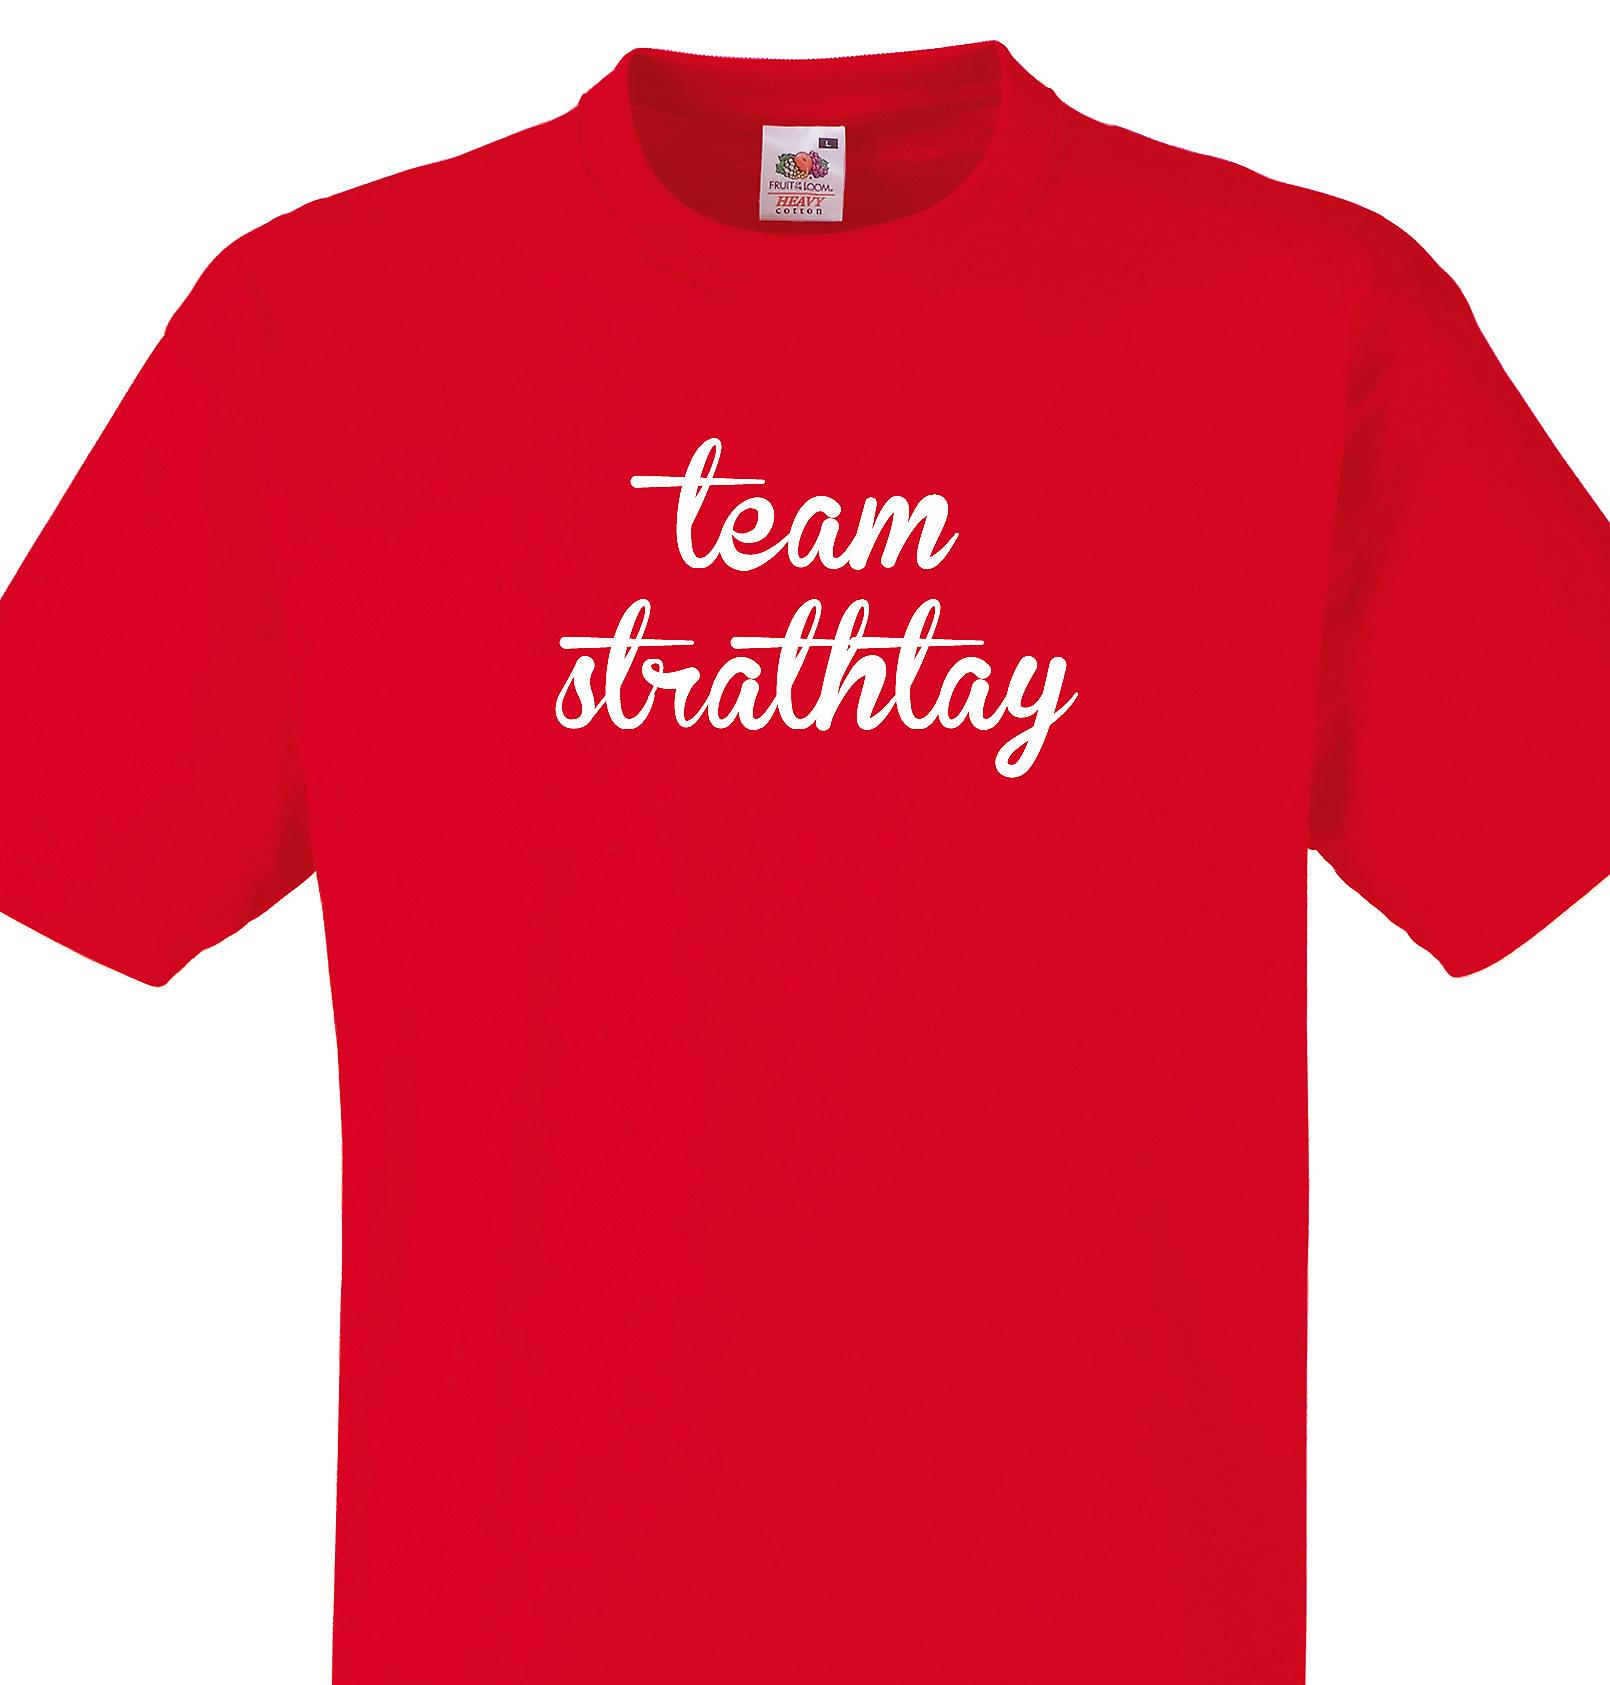 Team Strathtay Red T shirt